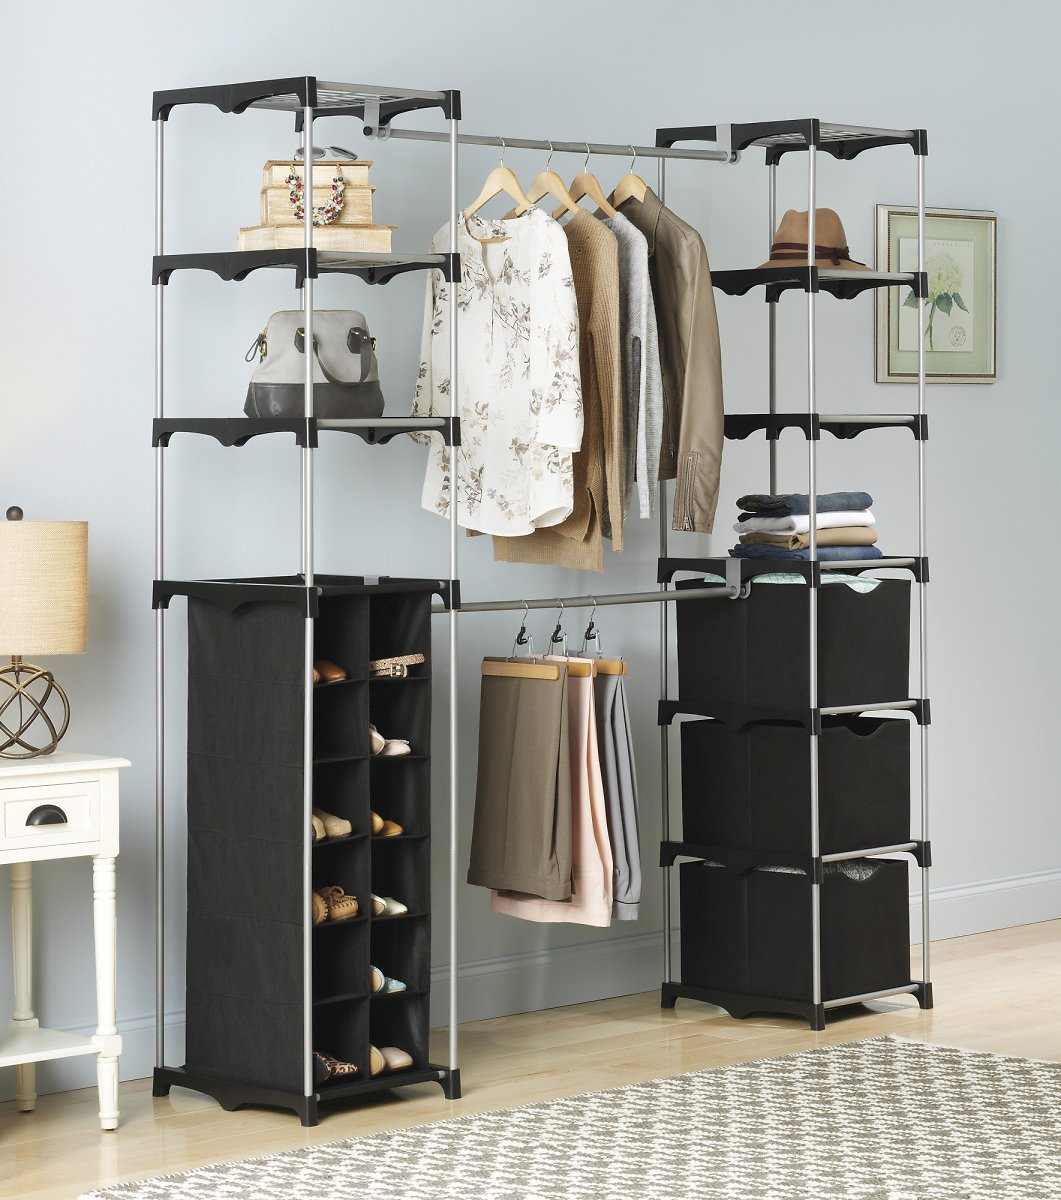 Whitmor Deluxe Double Rod Adjustable Closet Organization System - Silver & Black - 19.5